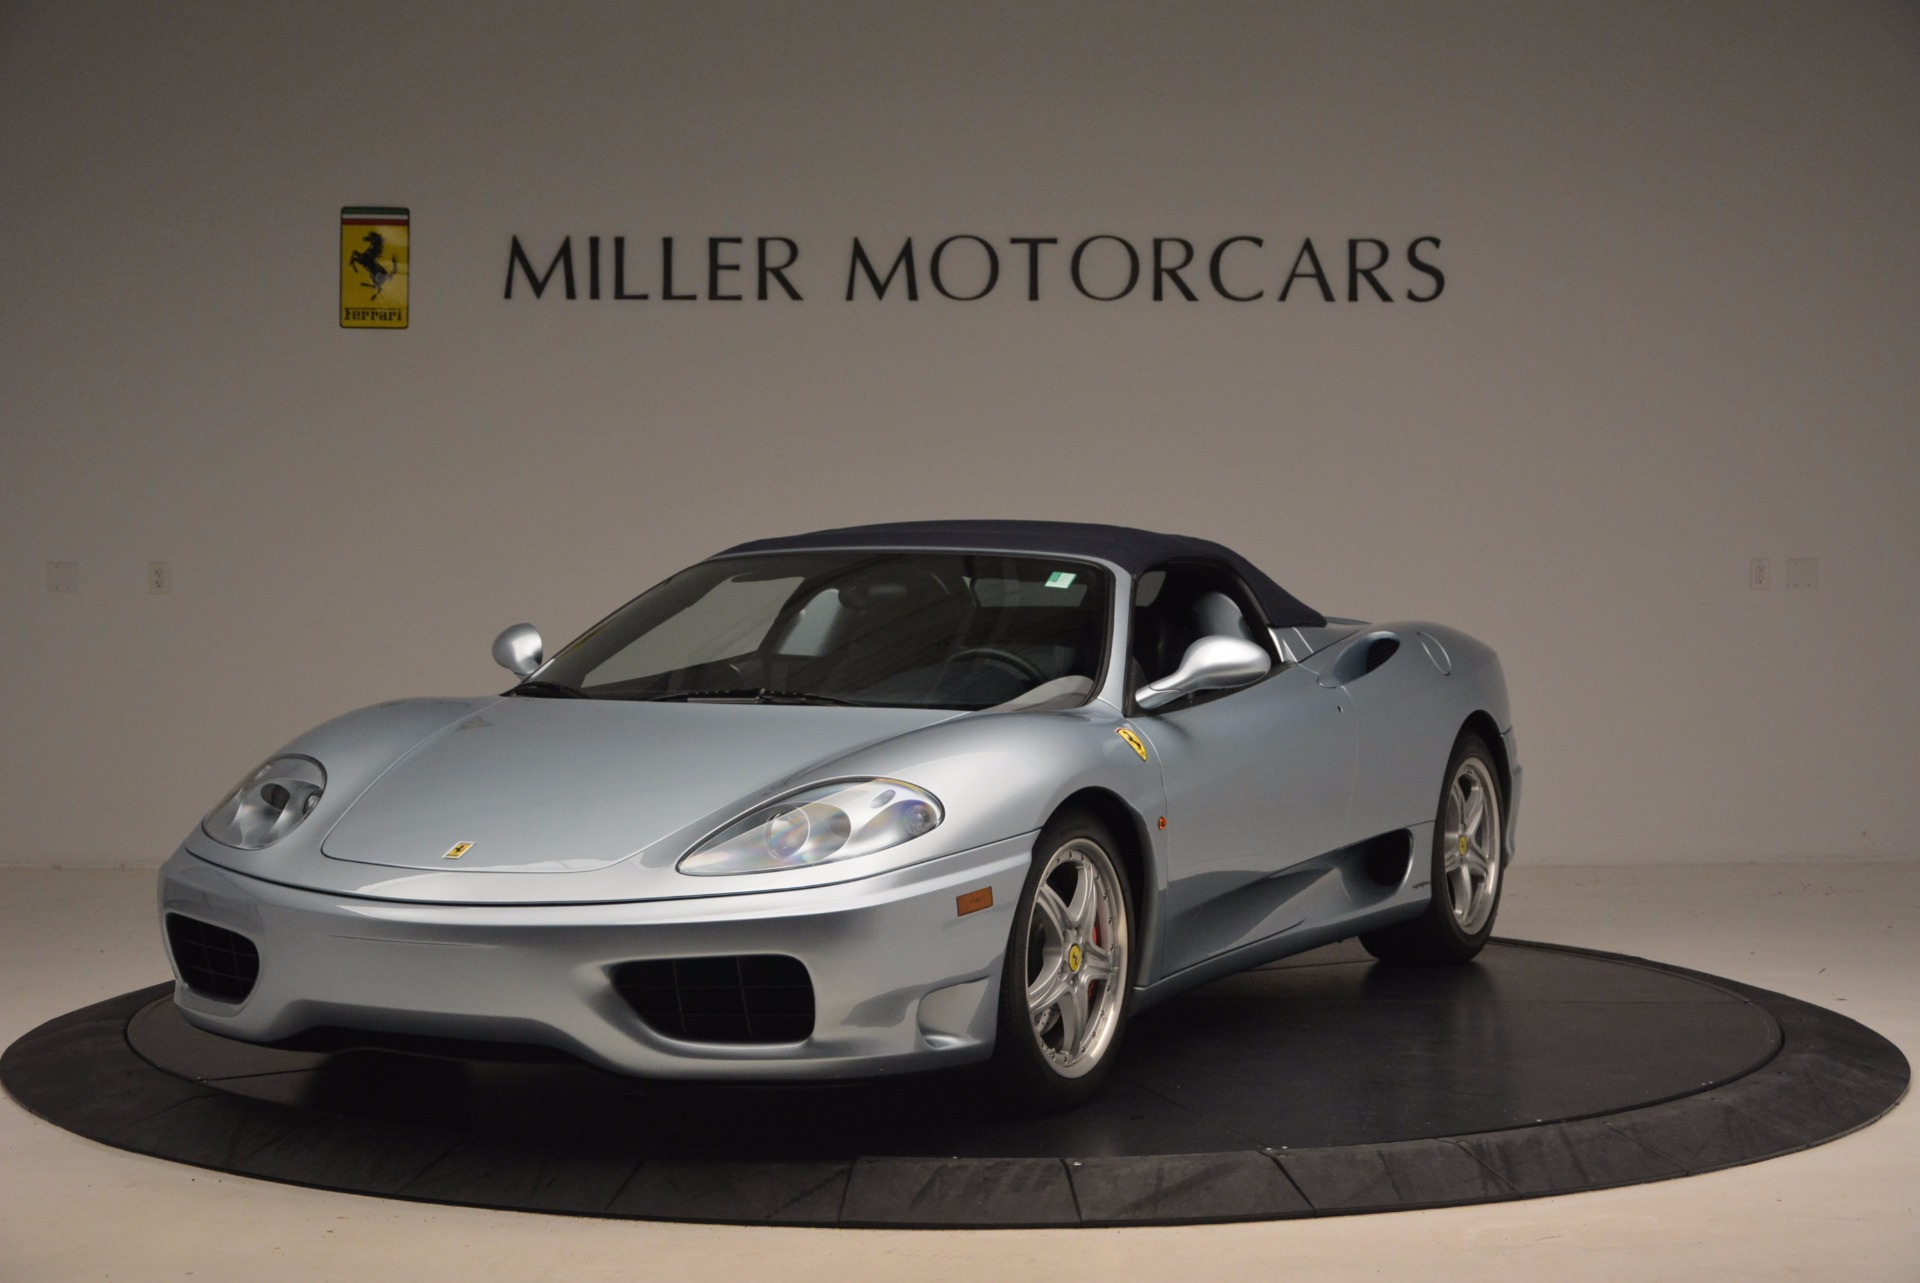 Used 2003 Ferrari 360 Spider 6-Speed Manual For Sale In Greenwich, CT 1445_p13